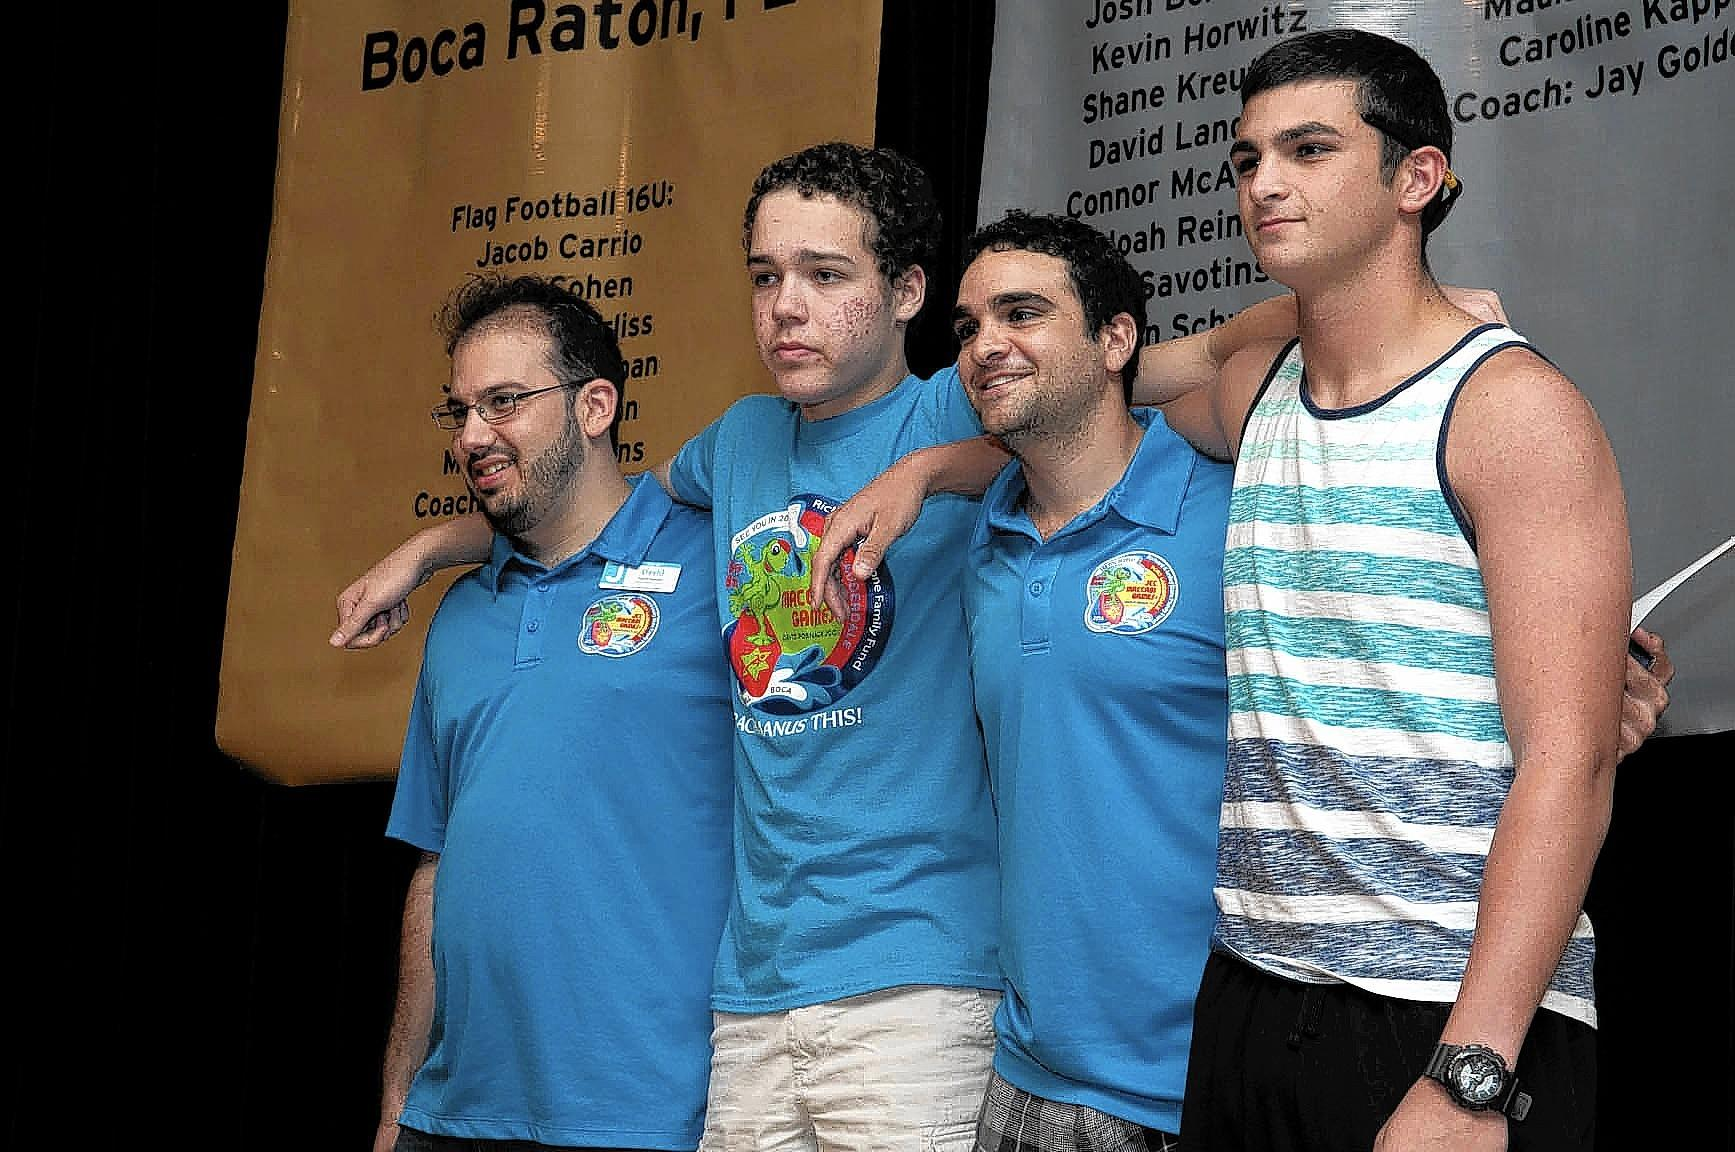 Winners of the Midot Medal David Sopshin, Jeffrey Sehour, Abraham Mercado, and Cole Perler, during The David Posnack Jewish Community Center, host of the 2015 JCC Maccabi Games and ArtsFest, invited all age-eligible Broward County athletes and artists to attend an informational kick-off event on Sunday, September 14.